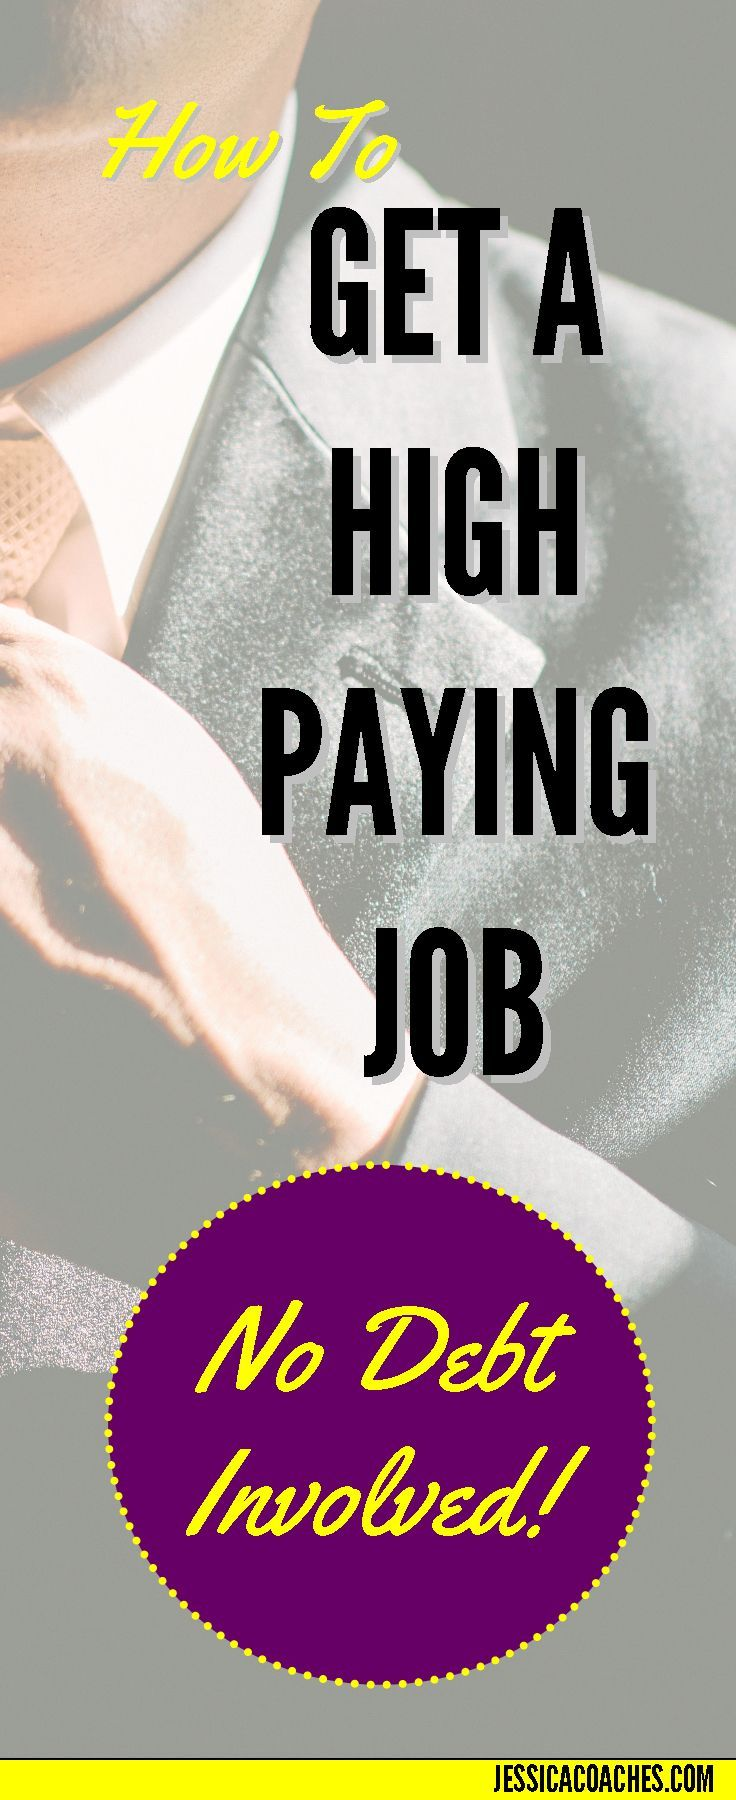 How to Get a High Paying Job No Debt Involved career, tuition, cash. scholarship, cheap, student, loans, university, money, budget